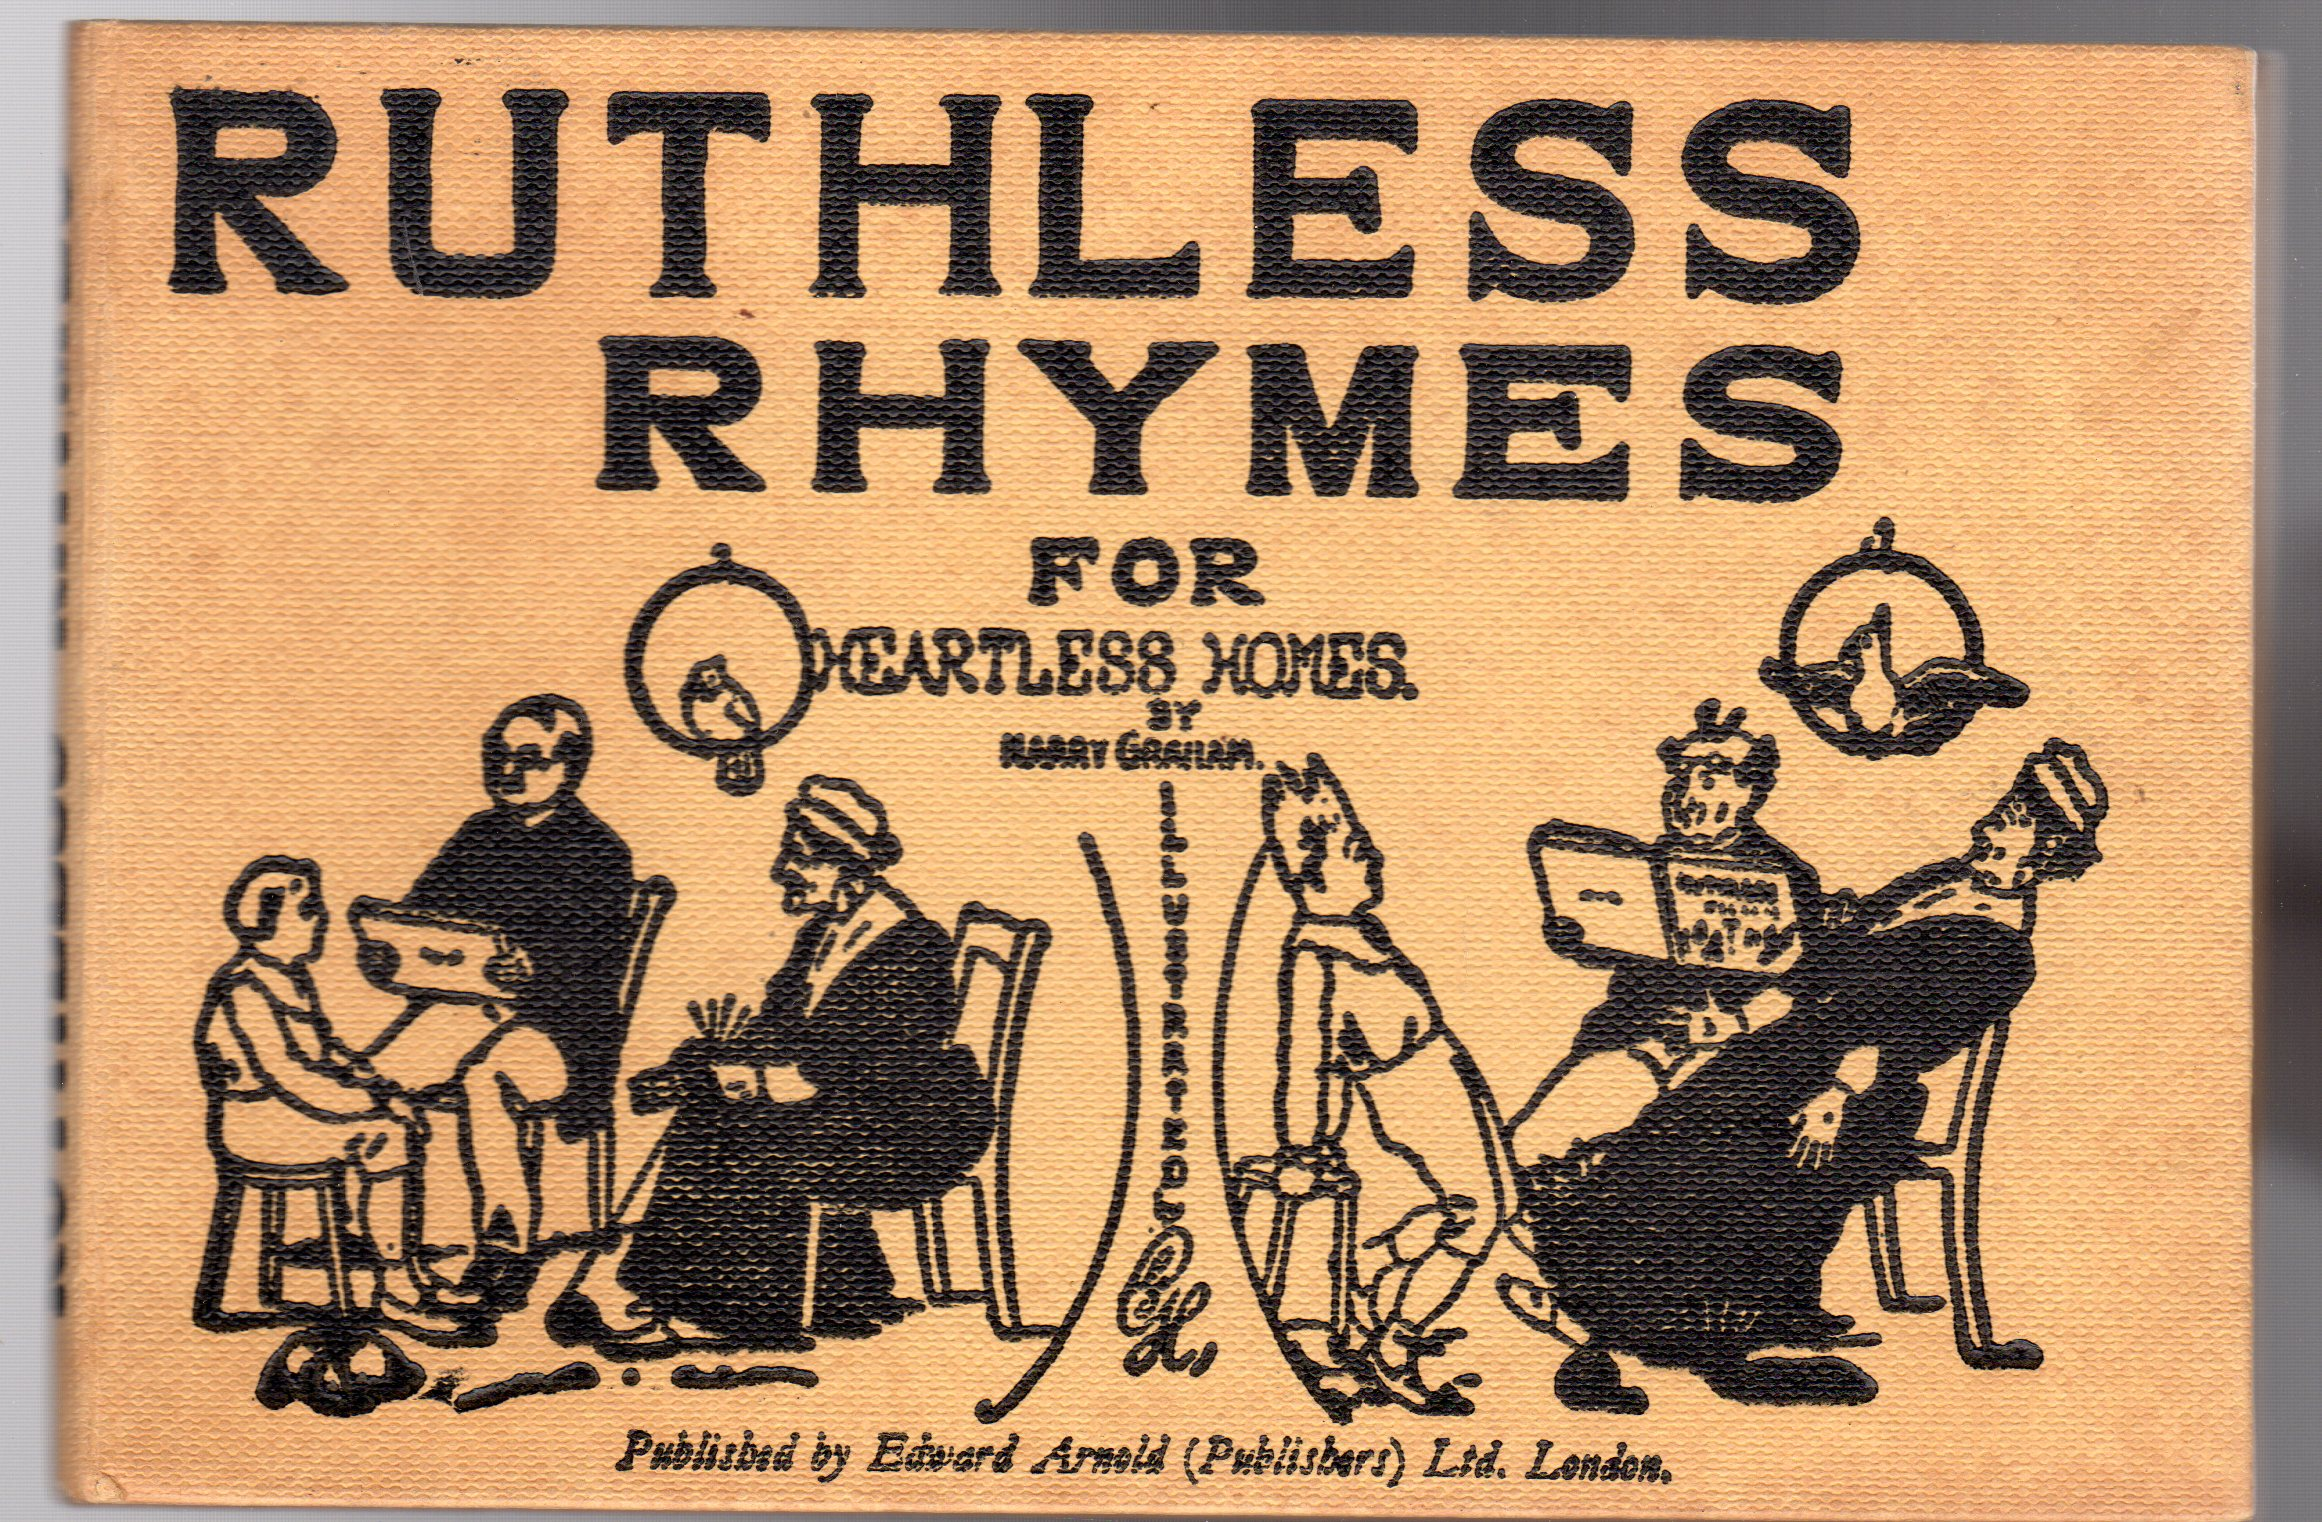 Image for Ruthless Rhymes for Heartless Homes